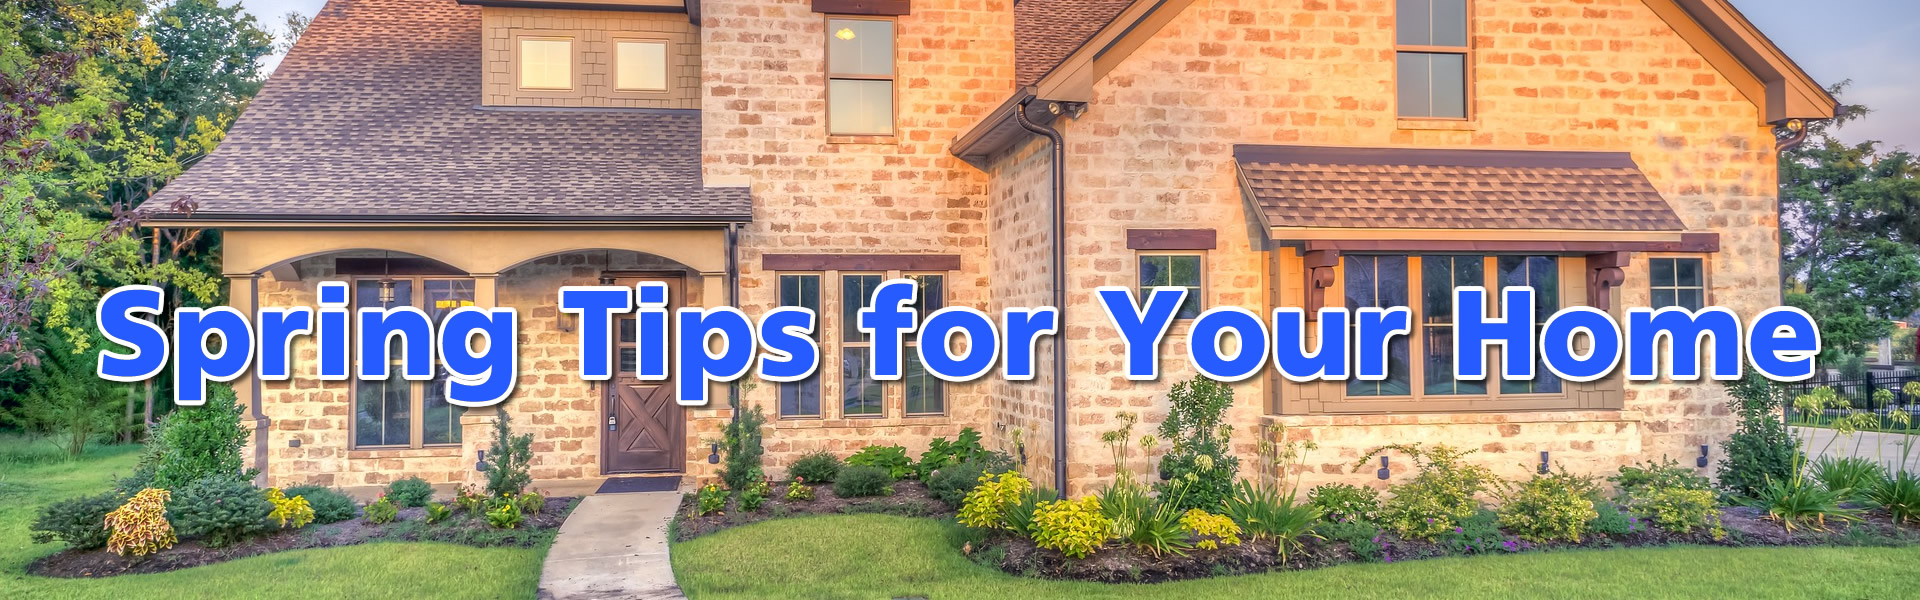 Spring Tips for Your Home